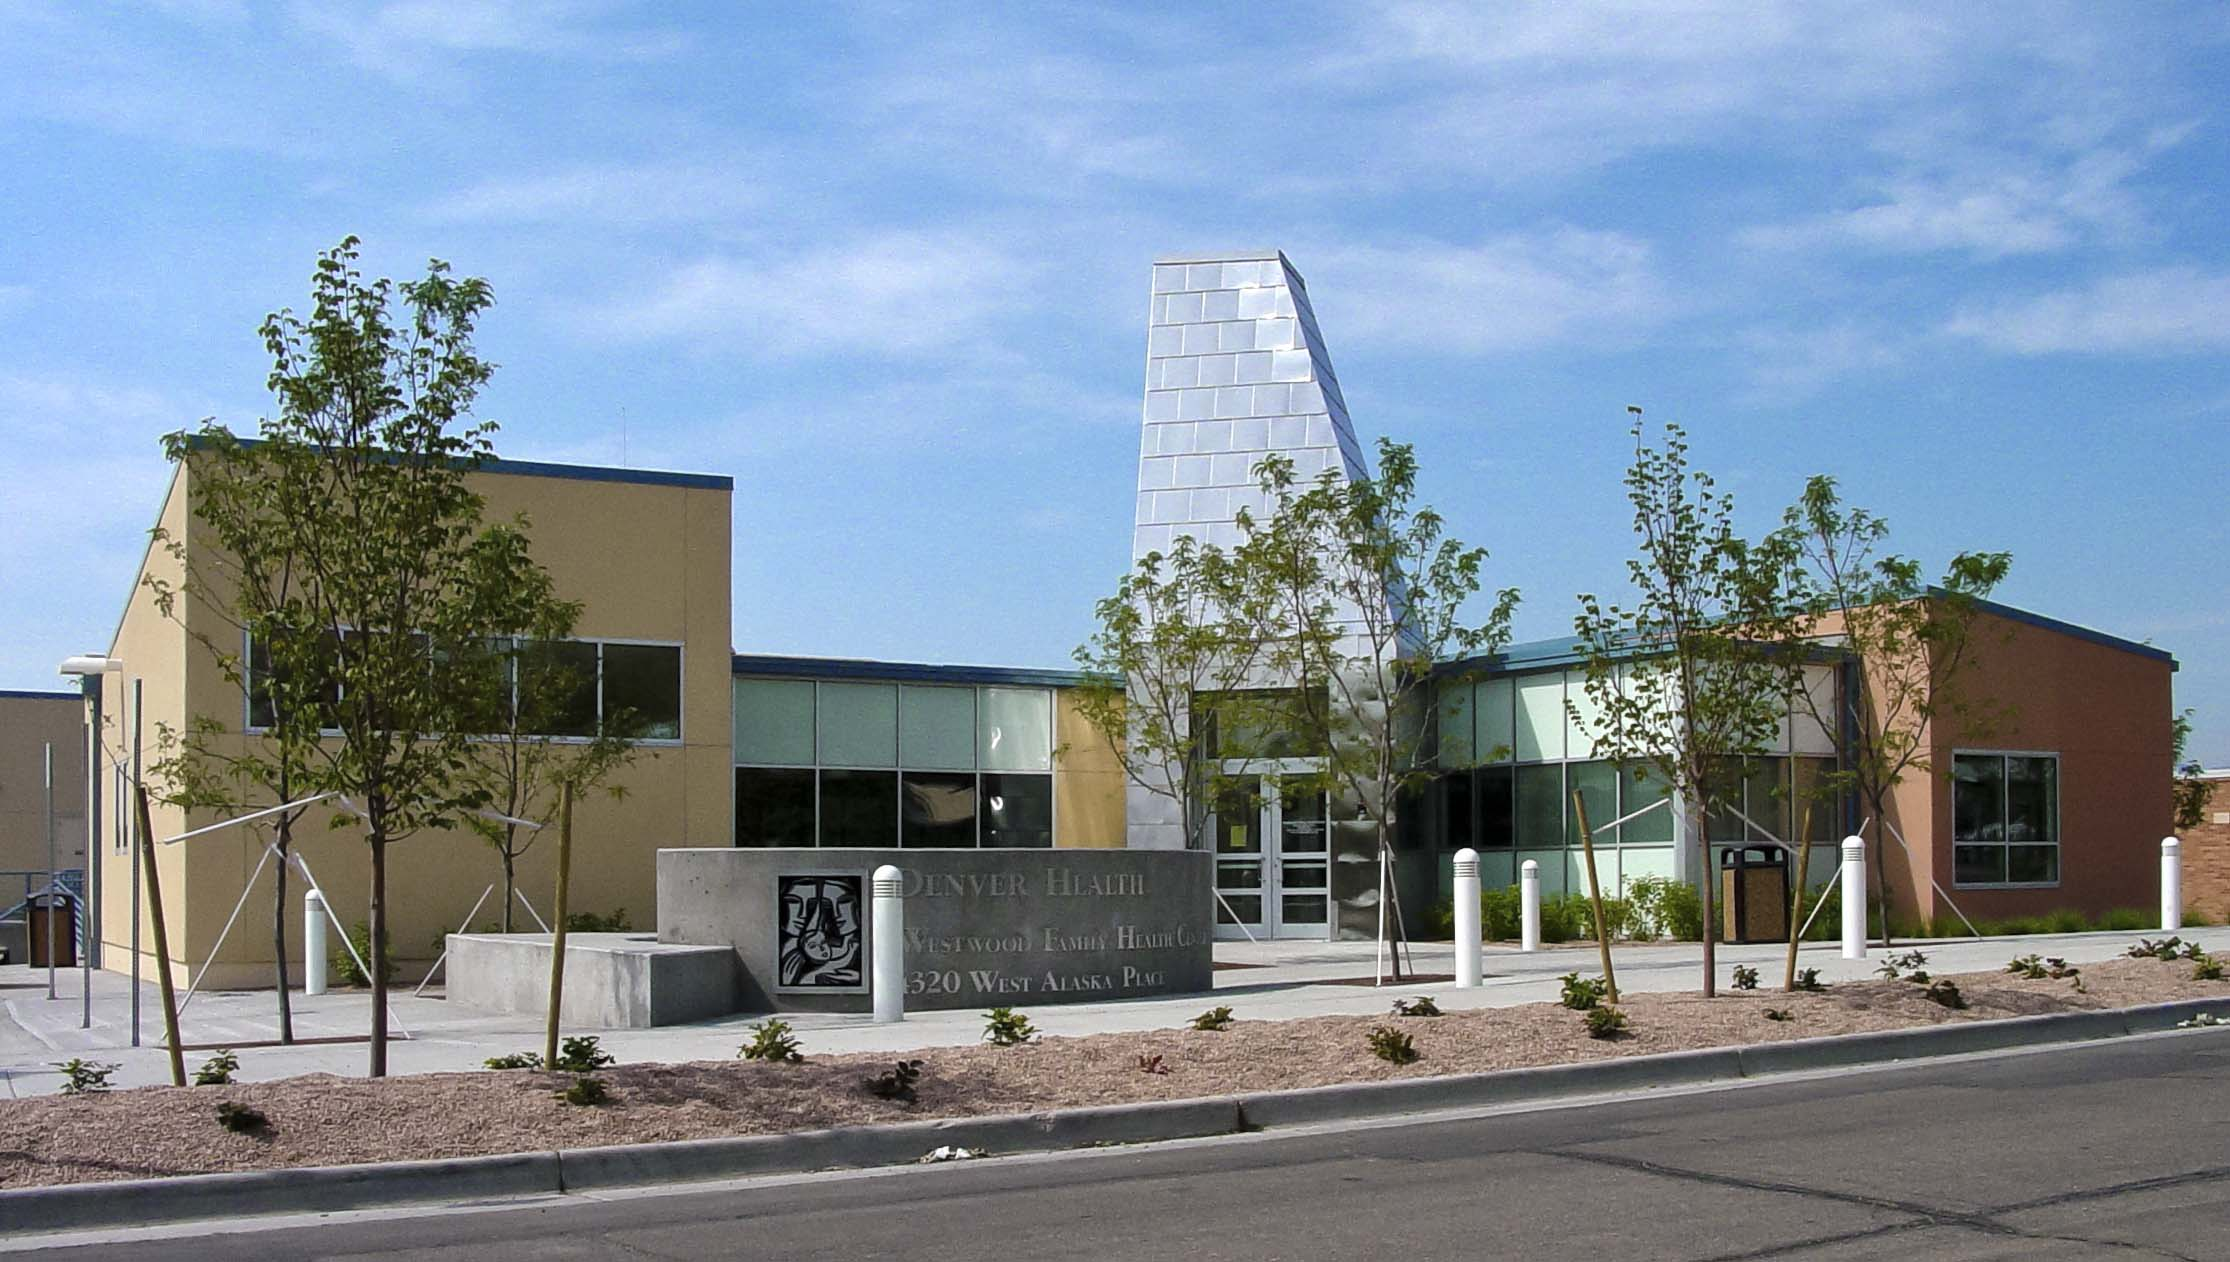 WESTWOOD FAMILY MEDICAL CENTER -  12,000 SF new medical office building.